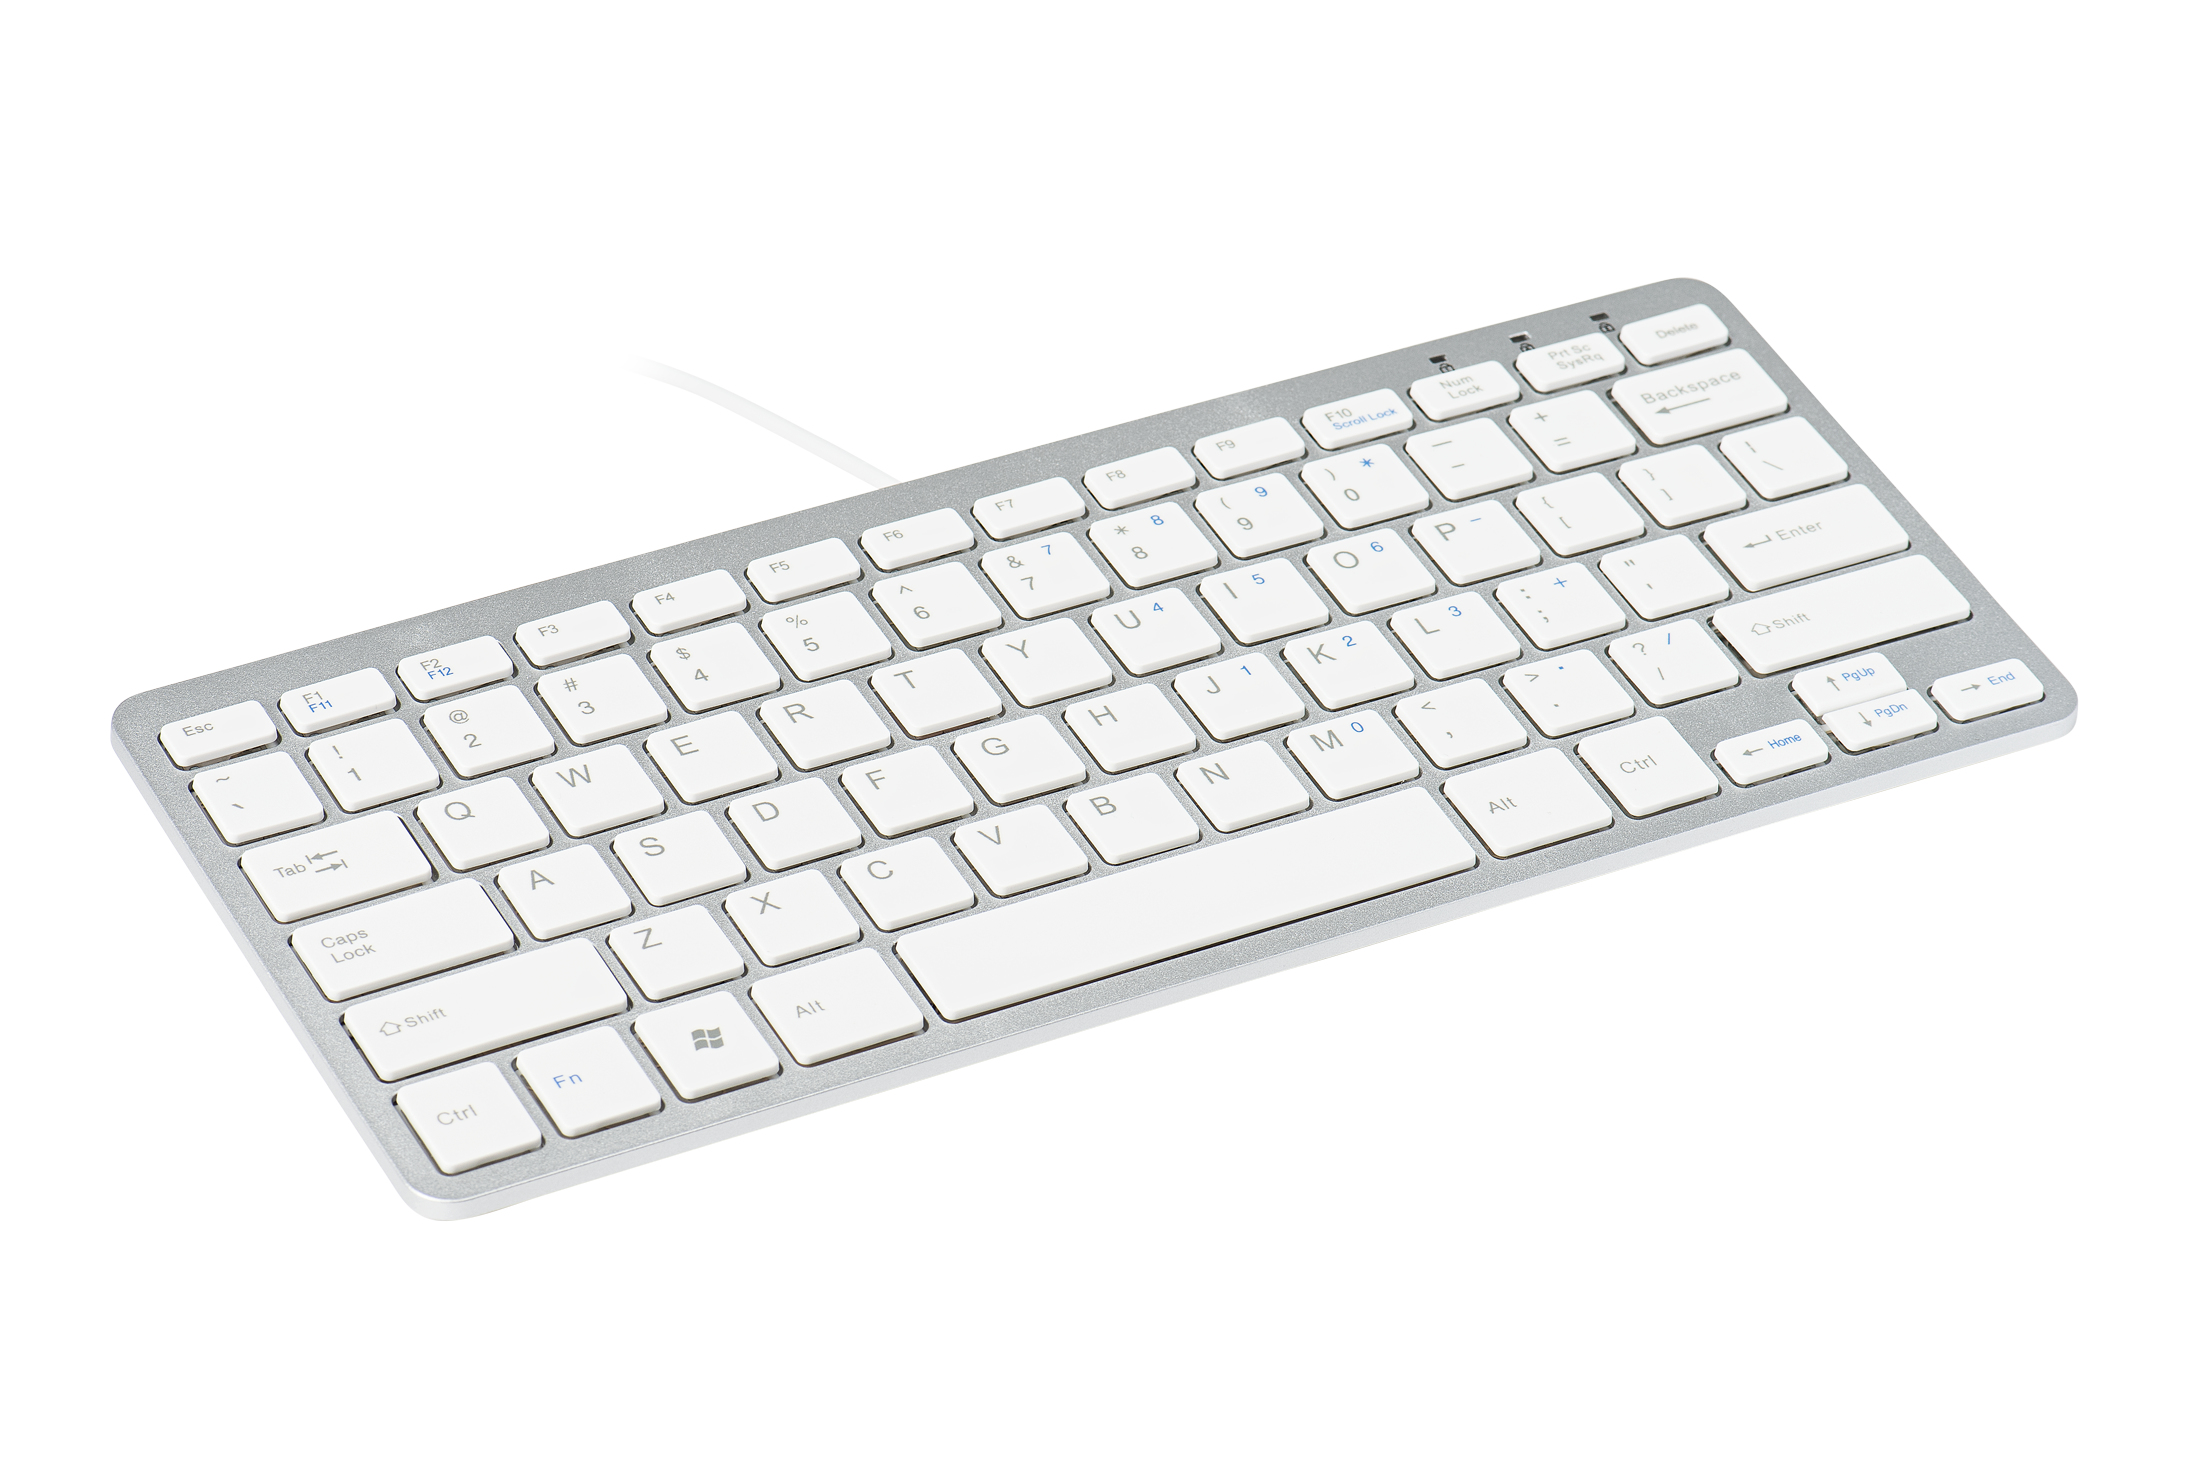 R-GO TOOLS RGOECNDW COMPACT KEYBOARD, QWERTY (NORDIC), WHITE, WIRED